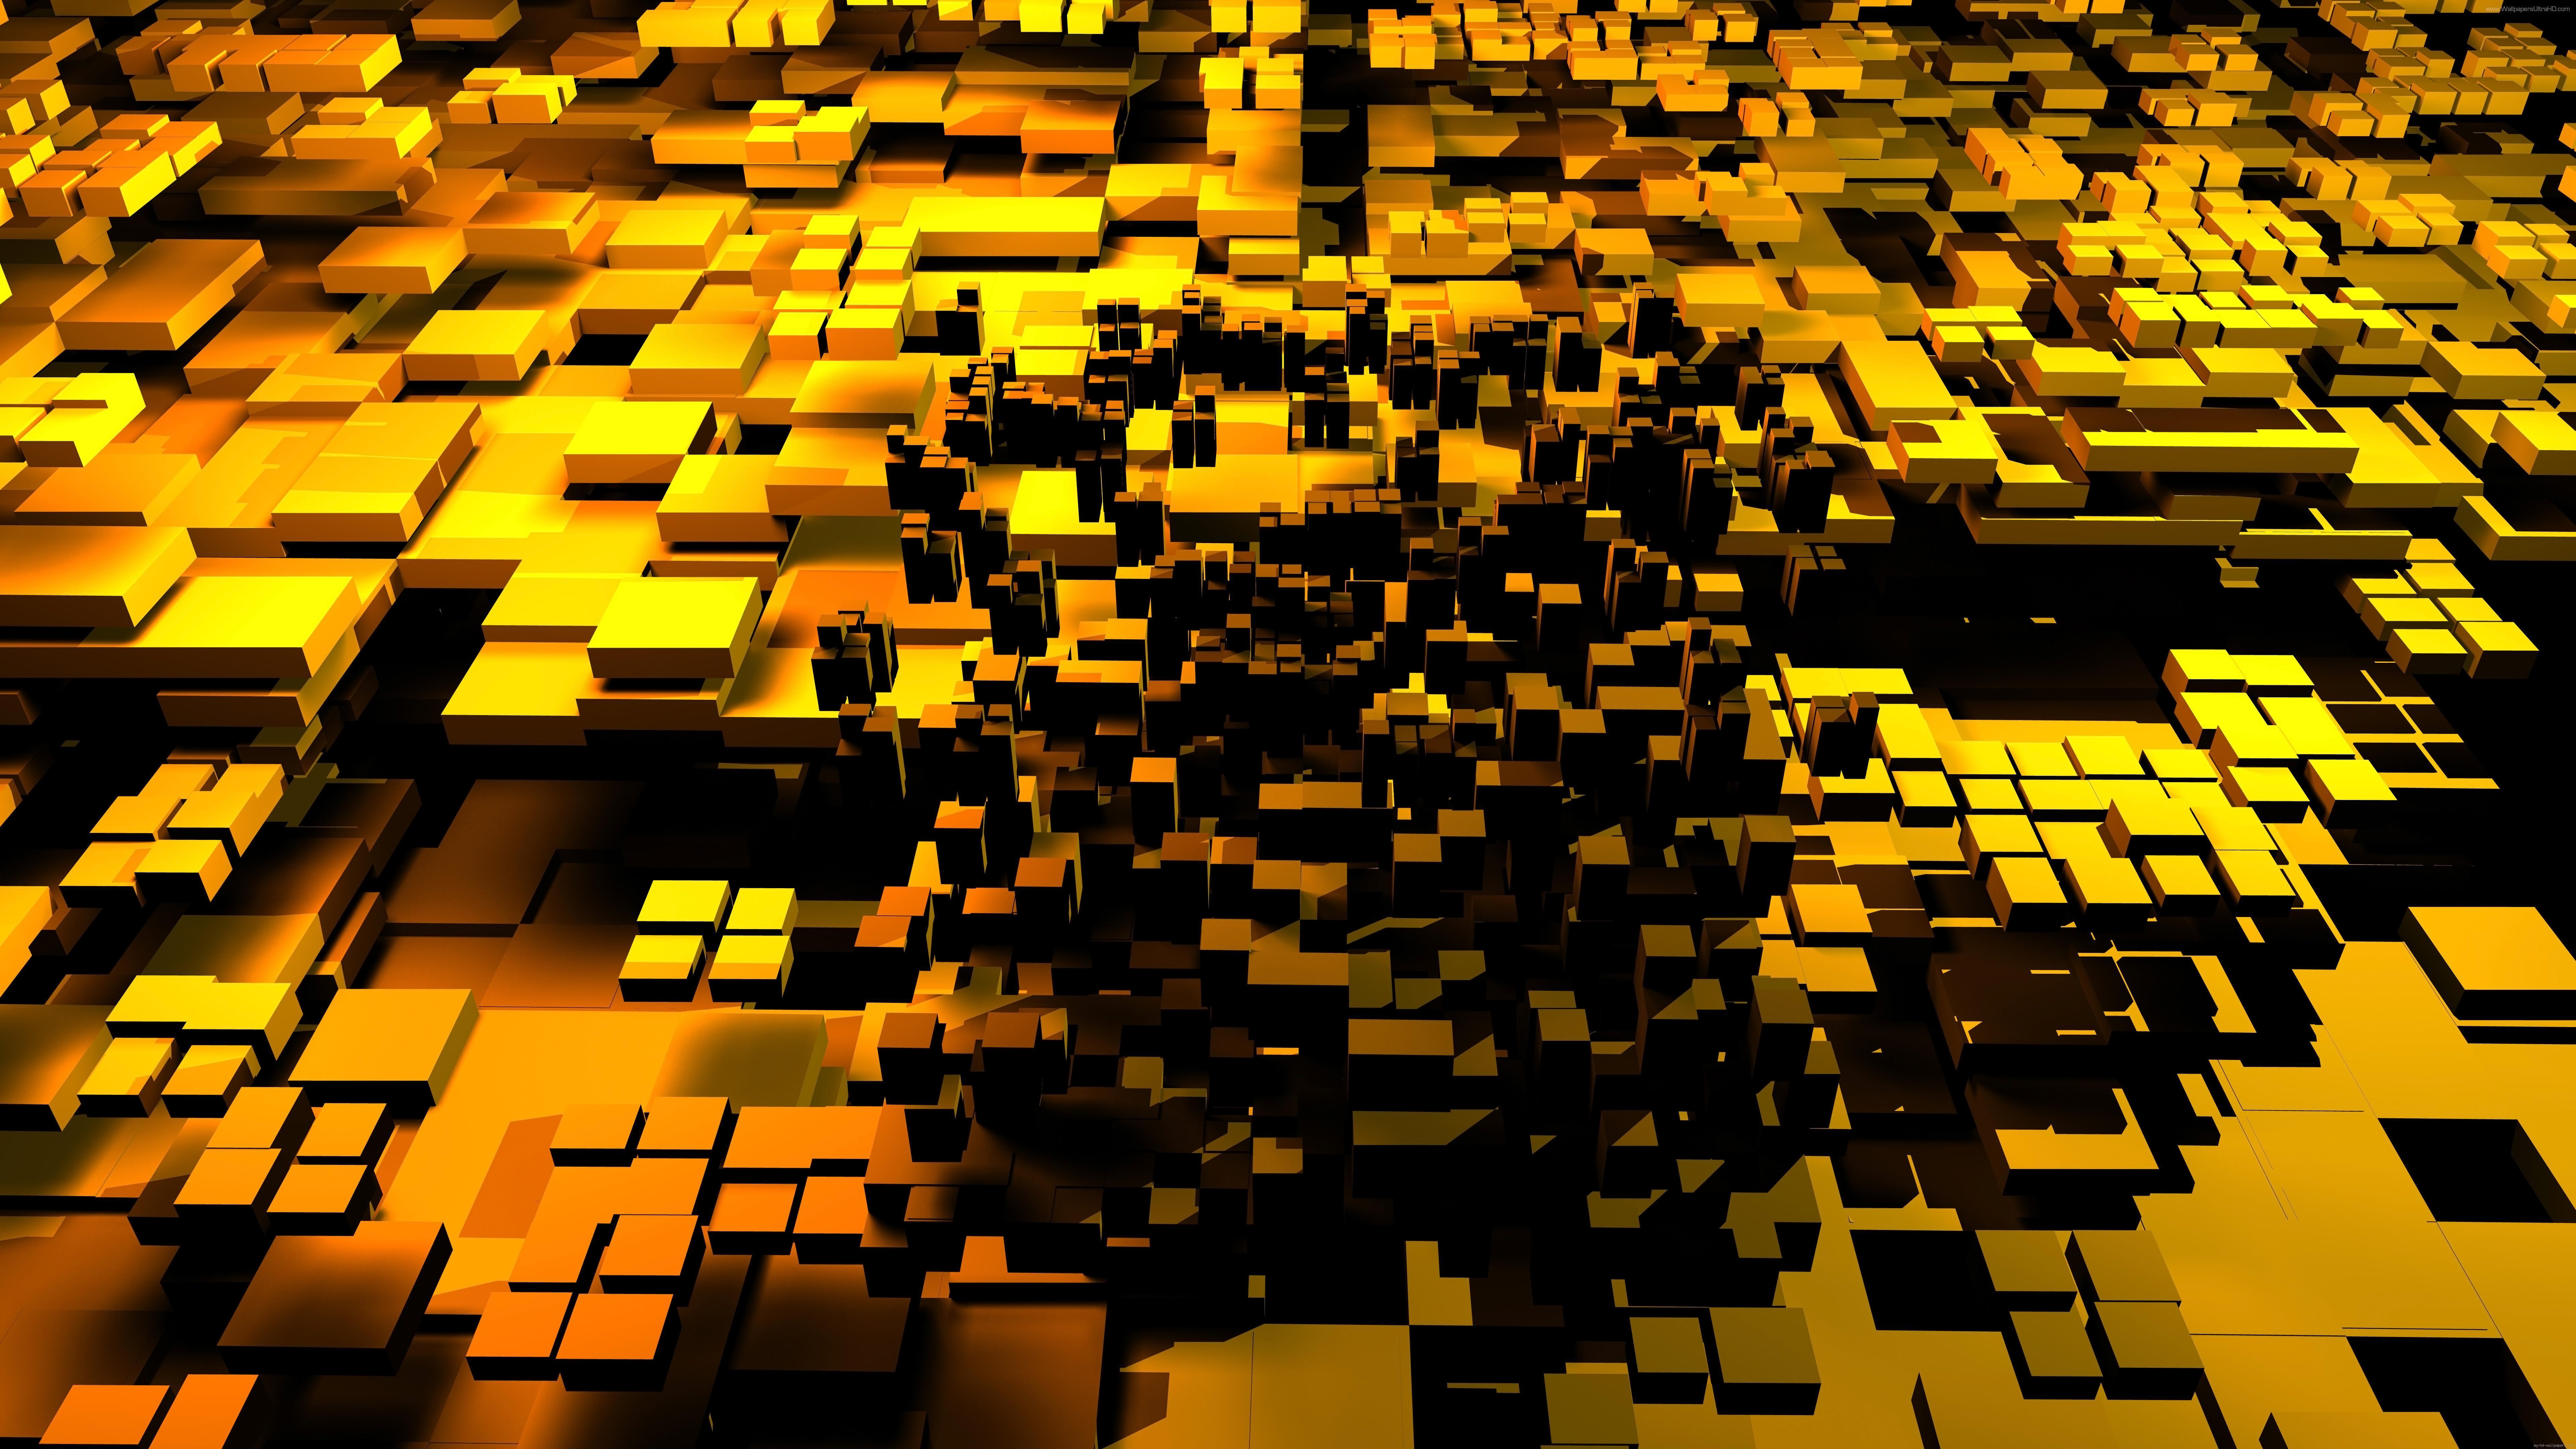 3d Golden Abstract Cubes Wallpaper 8k Ultra Hd Id3582